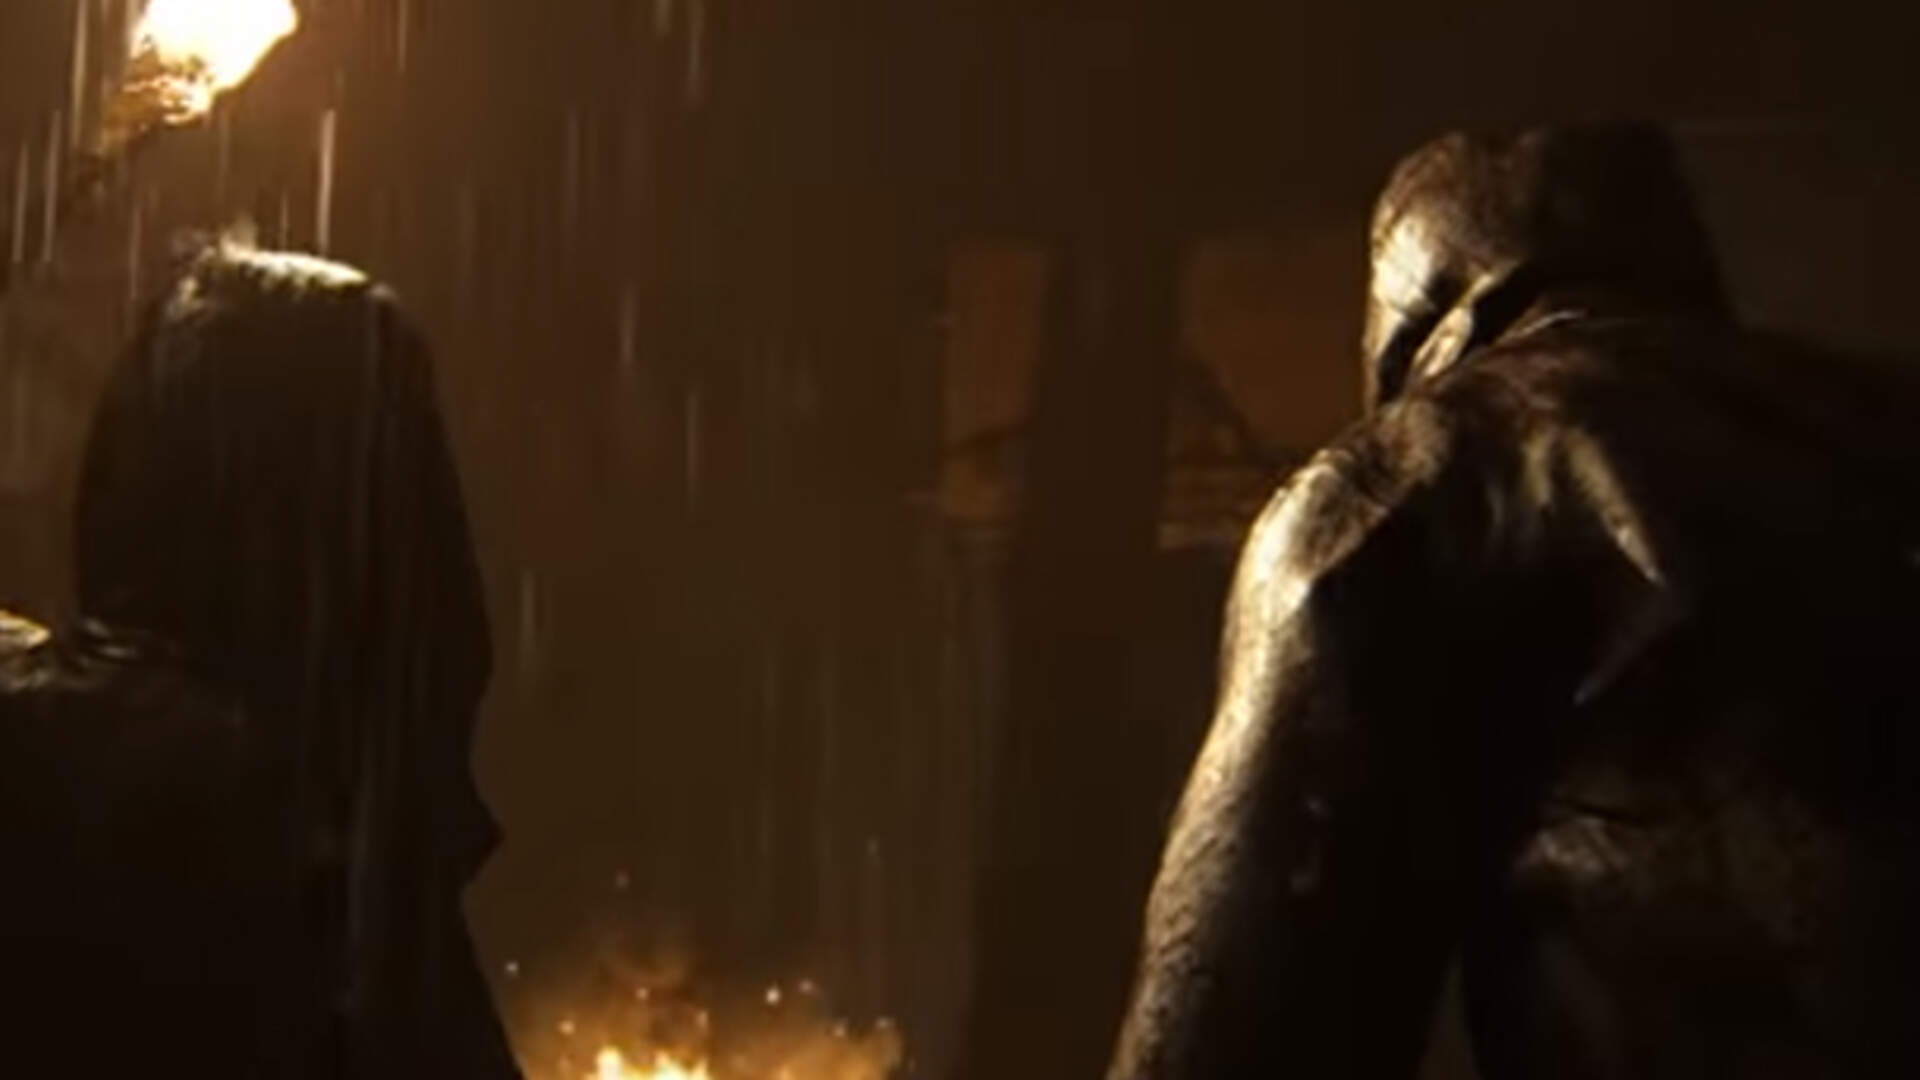 Watch: The Graphic New Last of Us 2 Trailer, Ghost of Tsushima, Spider-Man, and the Best of the Rest From PlayStation Live